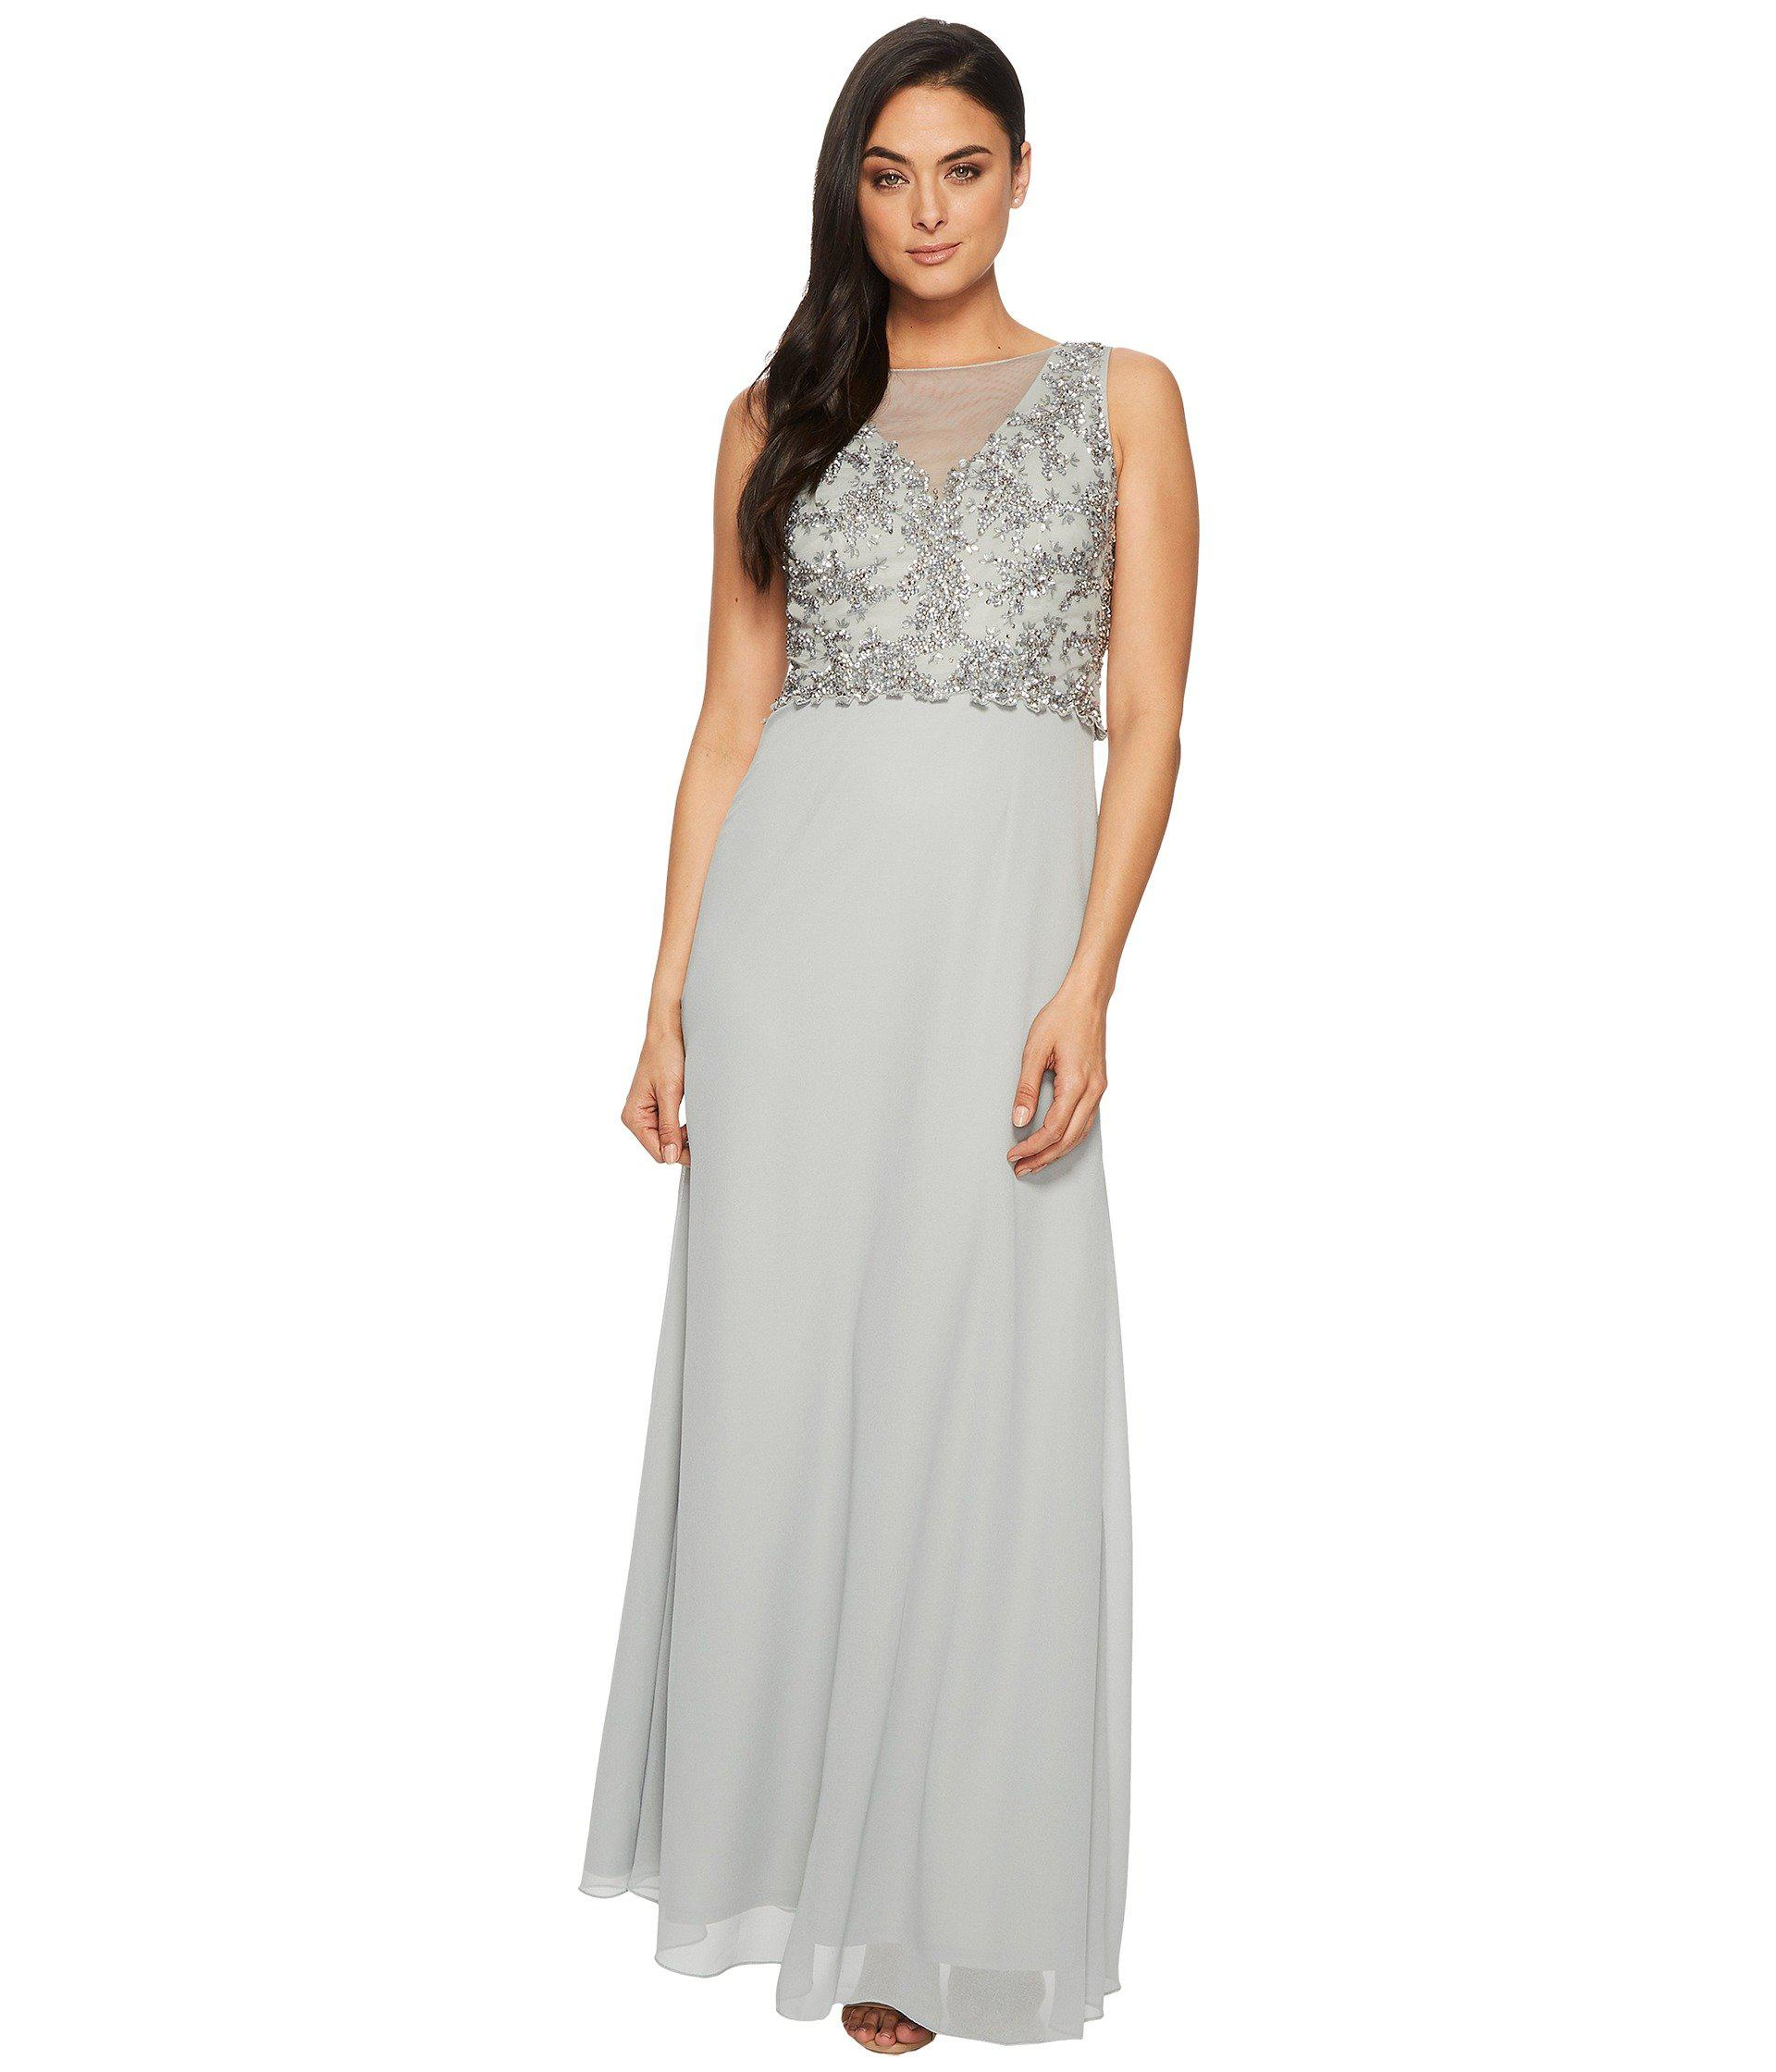 dac46c02b4086 Lyst - Adrianna Papell Sleeveless Beaded Bodice Gown With Sheer V ...